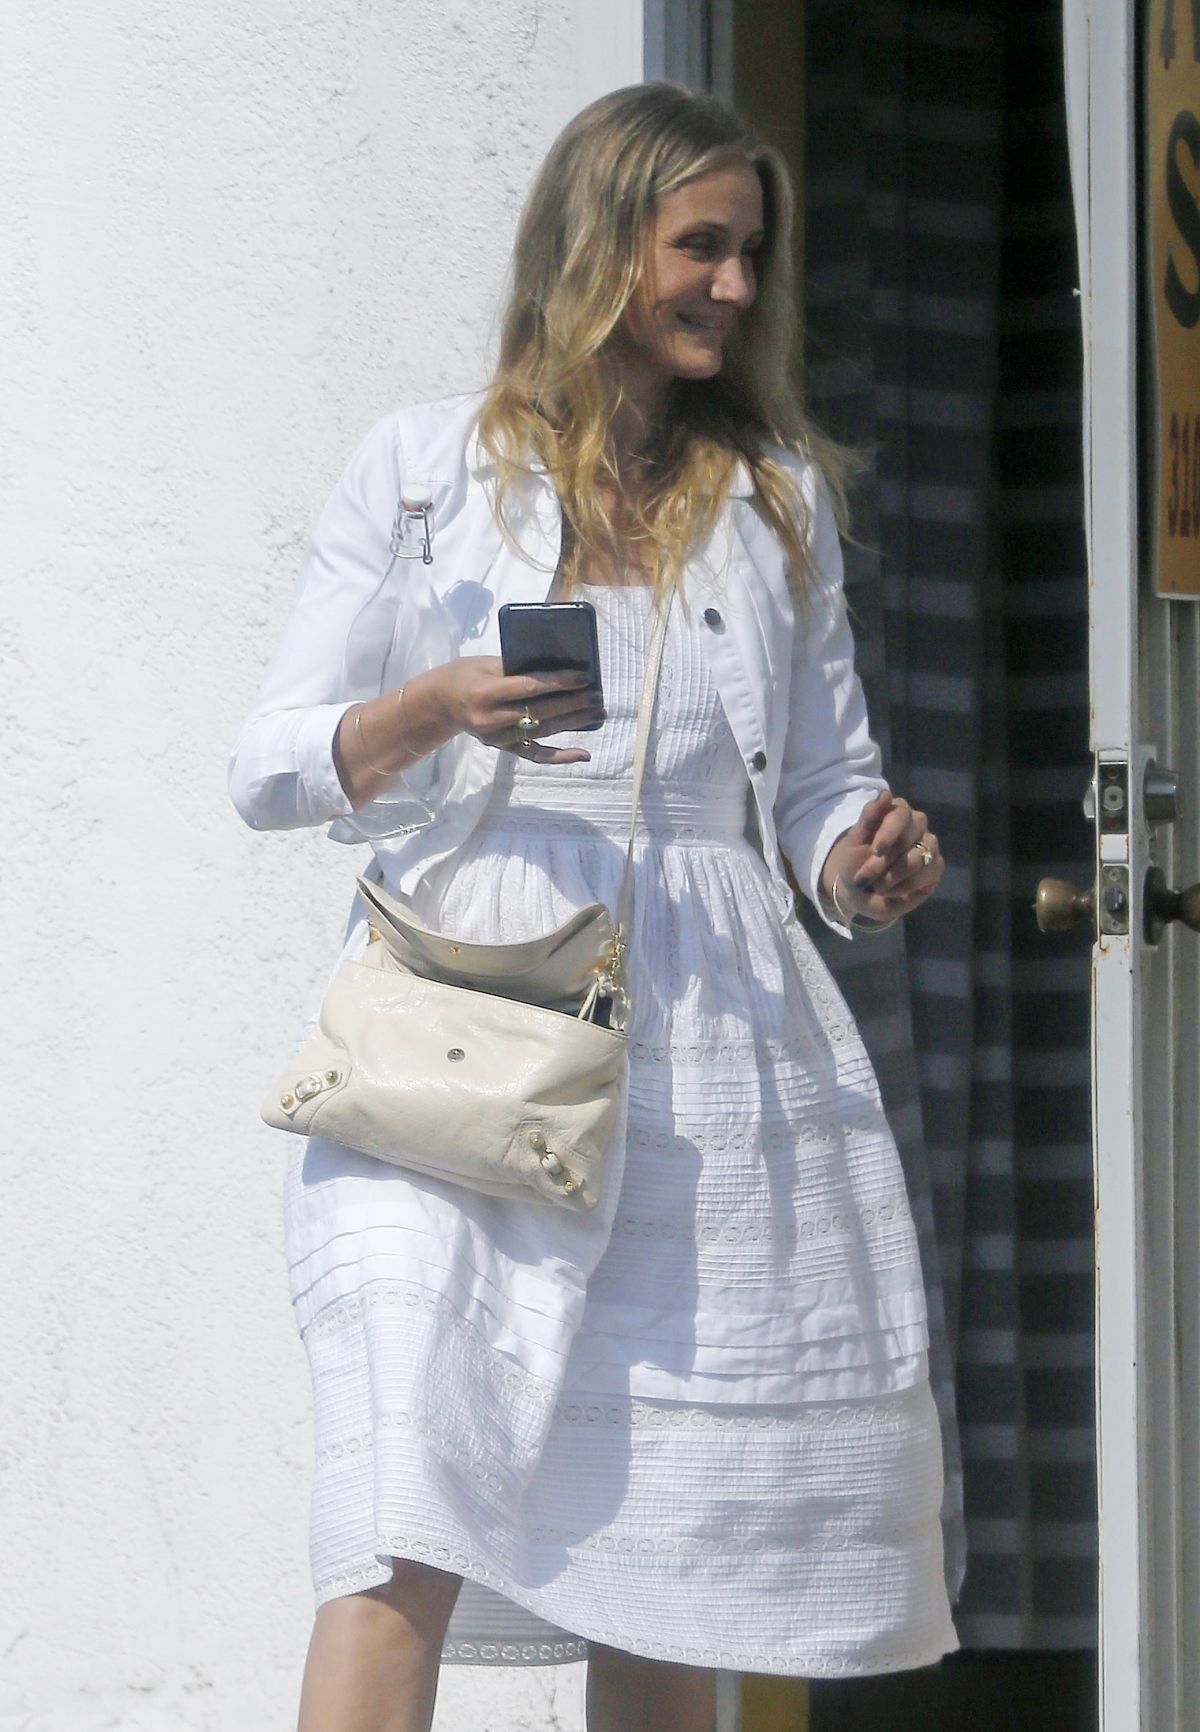 cameron diaz out and about in beverly hills 07  30  2016